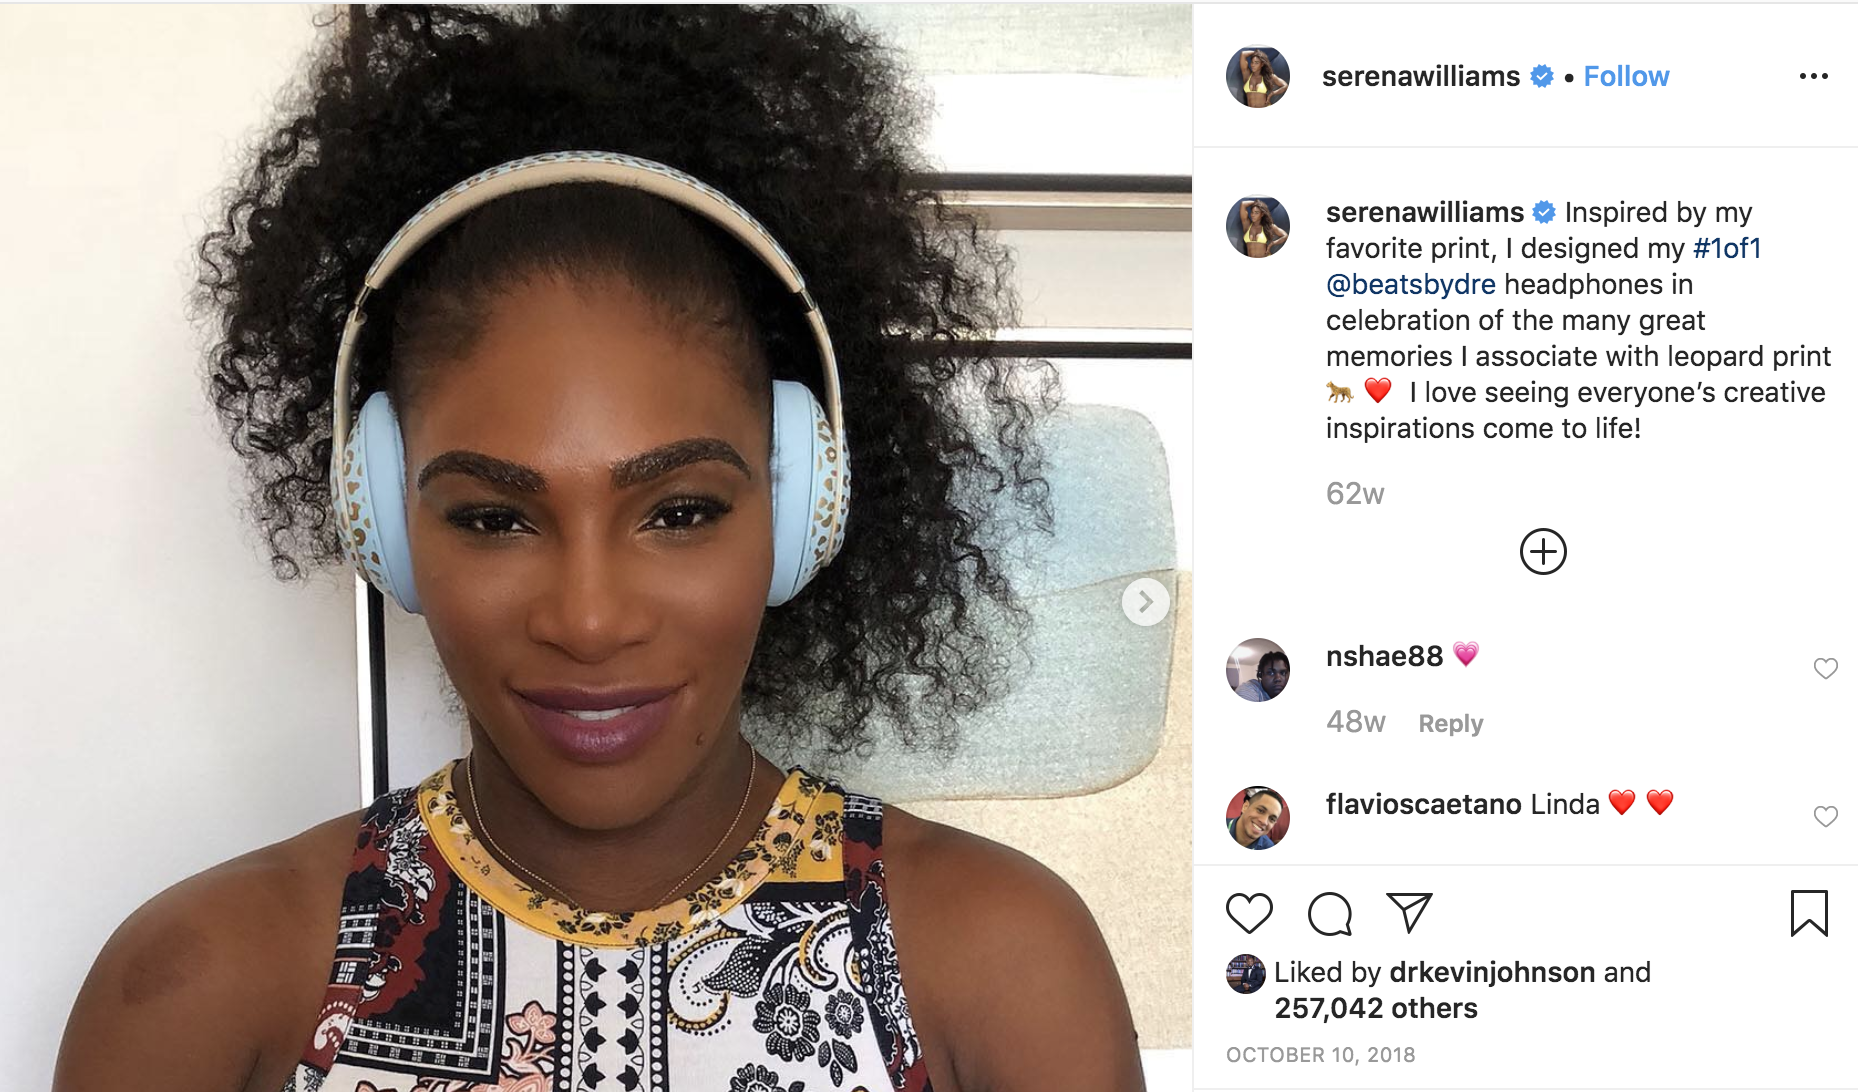 Tennis player Serena Williams poses with Beats by Dre headphones on.